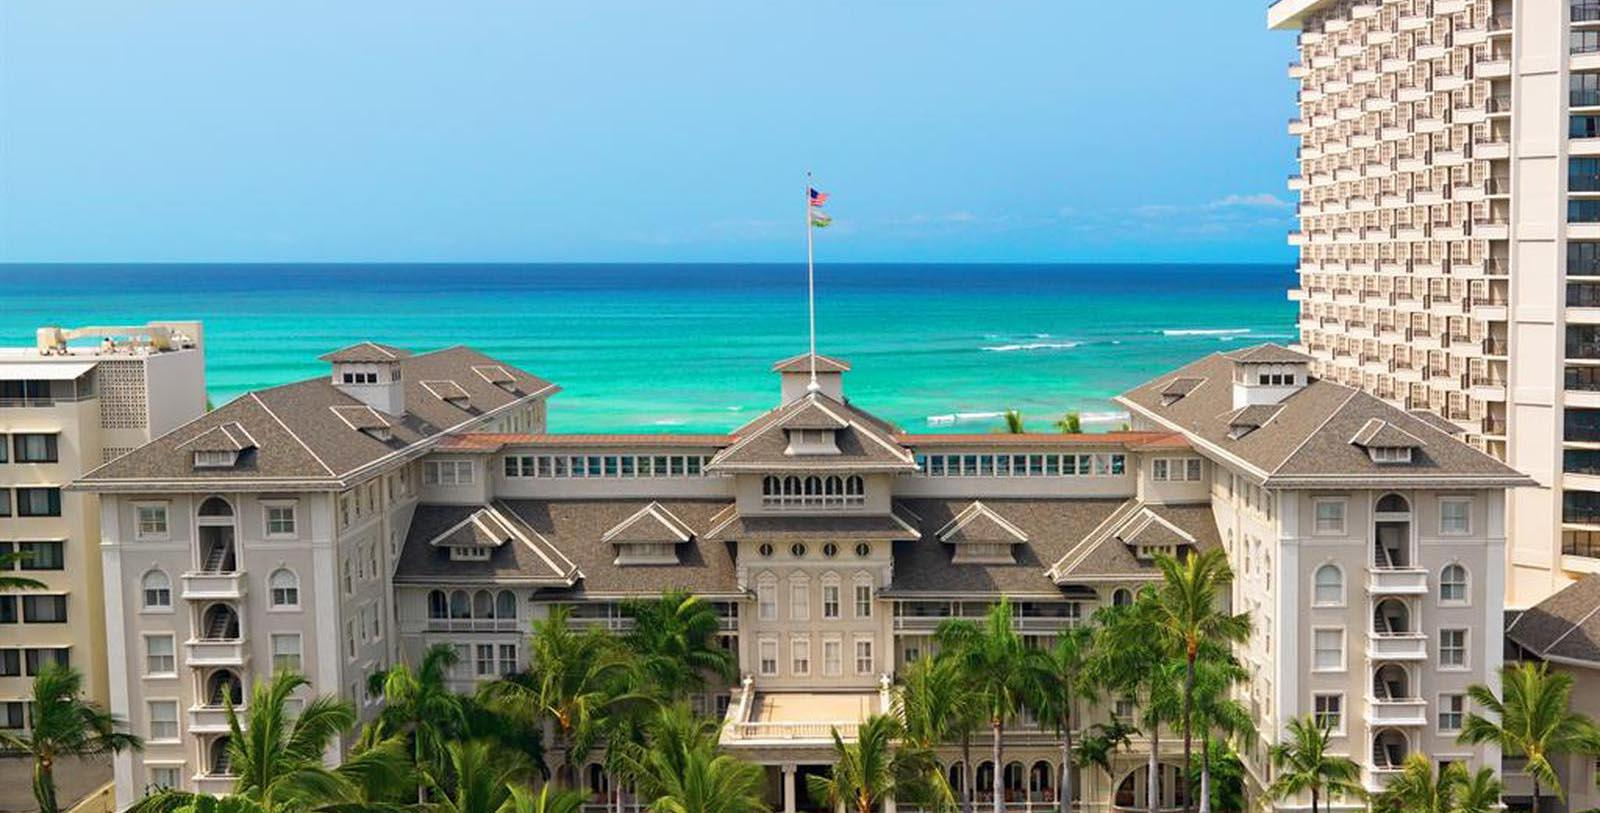 Image of Exterior & Ocean View, Moana Surfrider, A Westin Resort & Spa, Honolulu, Hawaii, 1901, Member of Historic Hotels of America, Special Offers, Discounted Rates, Families, Romantic Escape, Honeymoons, Anniversaries, Reunions